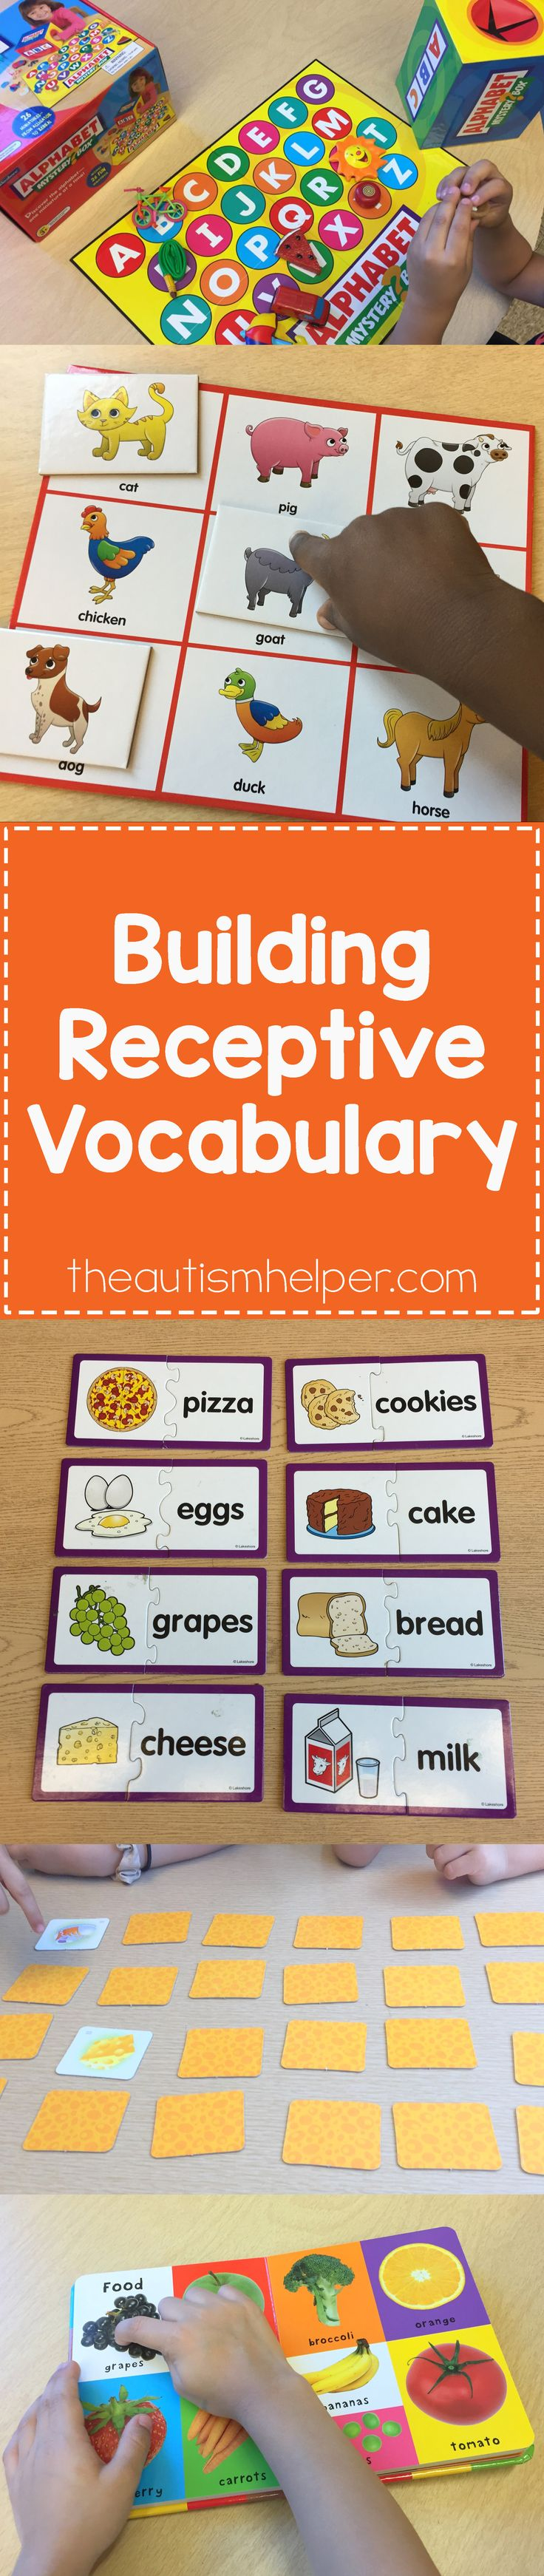 Building receptive language skills is so important to help our students associate meaning to words. Sarah's sharing different activities & ways to model new vocab terms & concepts today on the blog!! From theautismhelper.com #theautismhelper